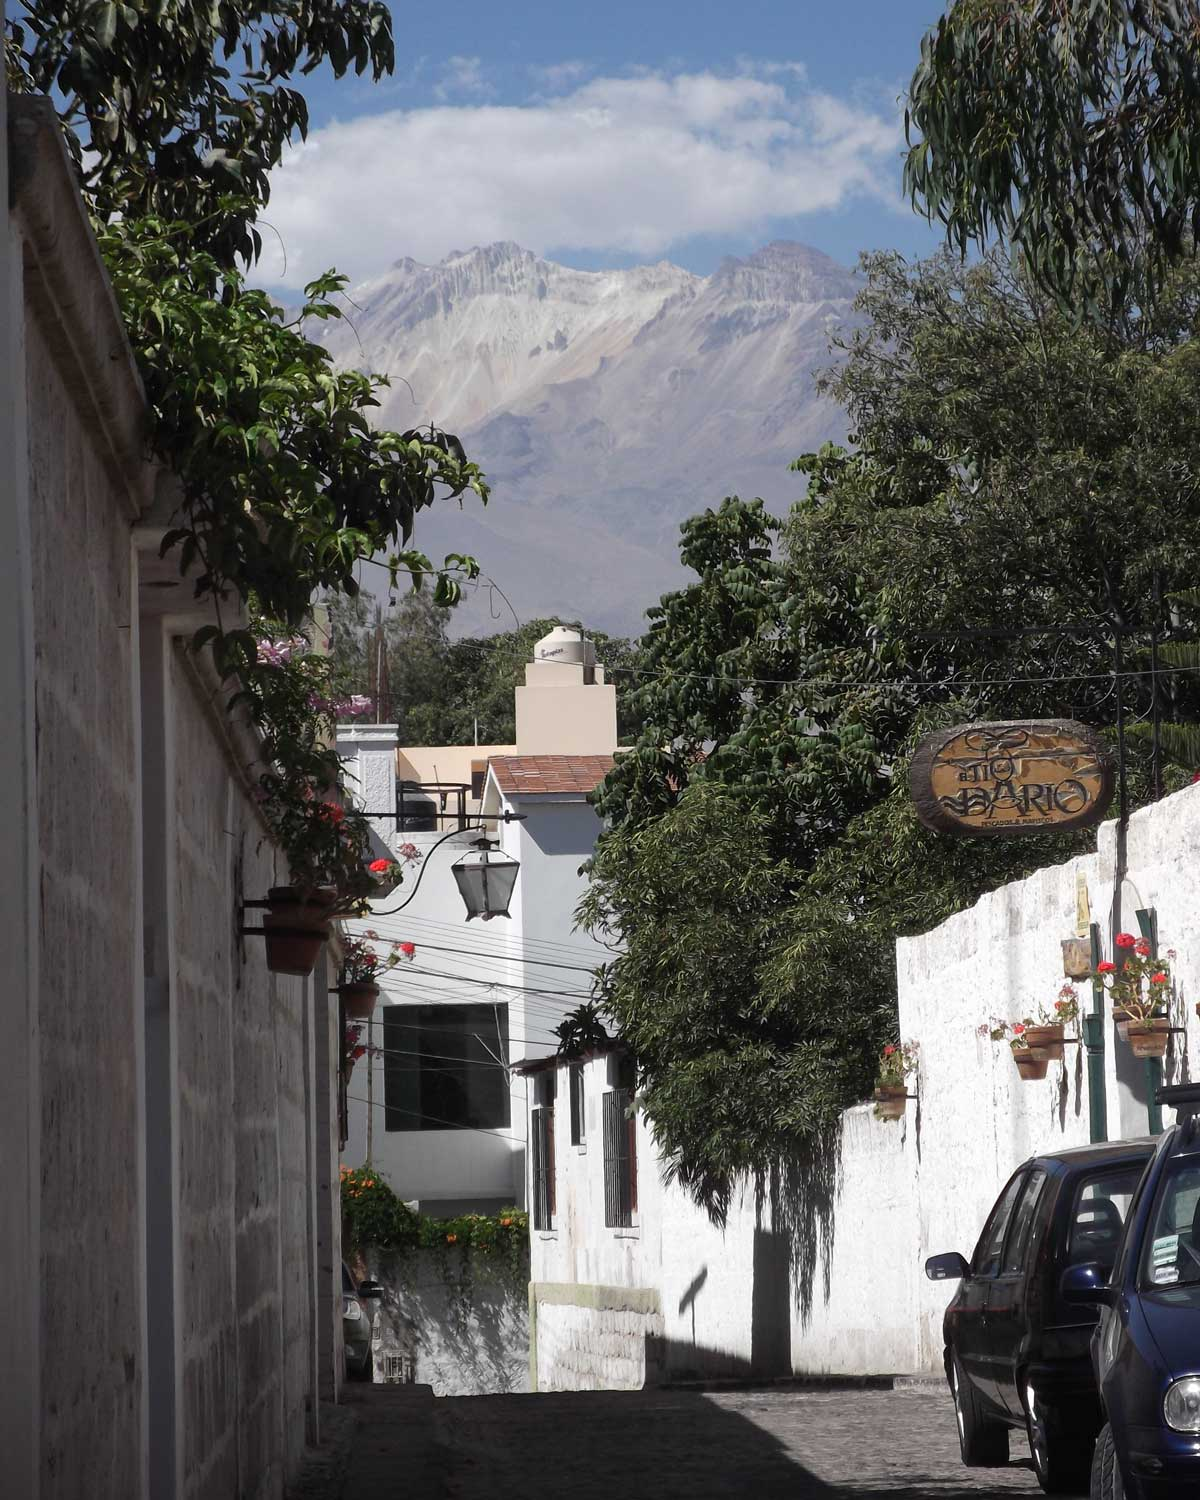 Chachani Volcano from the streets of Arequipa, Peru | ©Eleanor Hughes